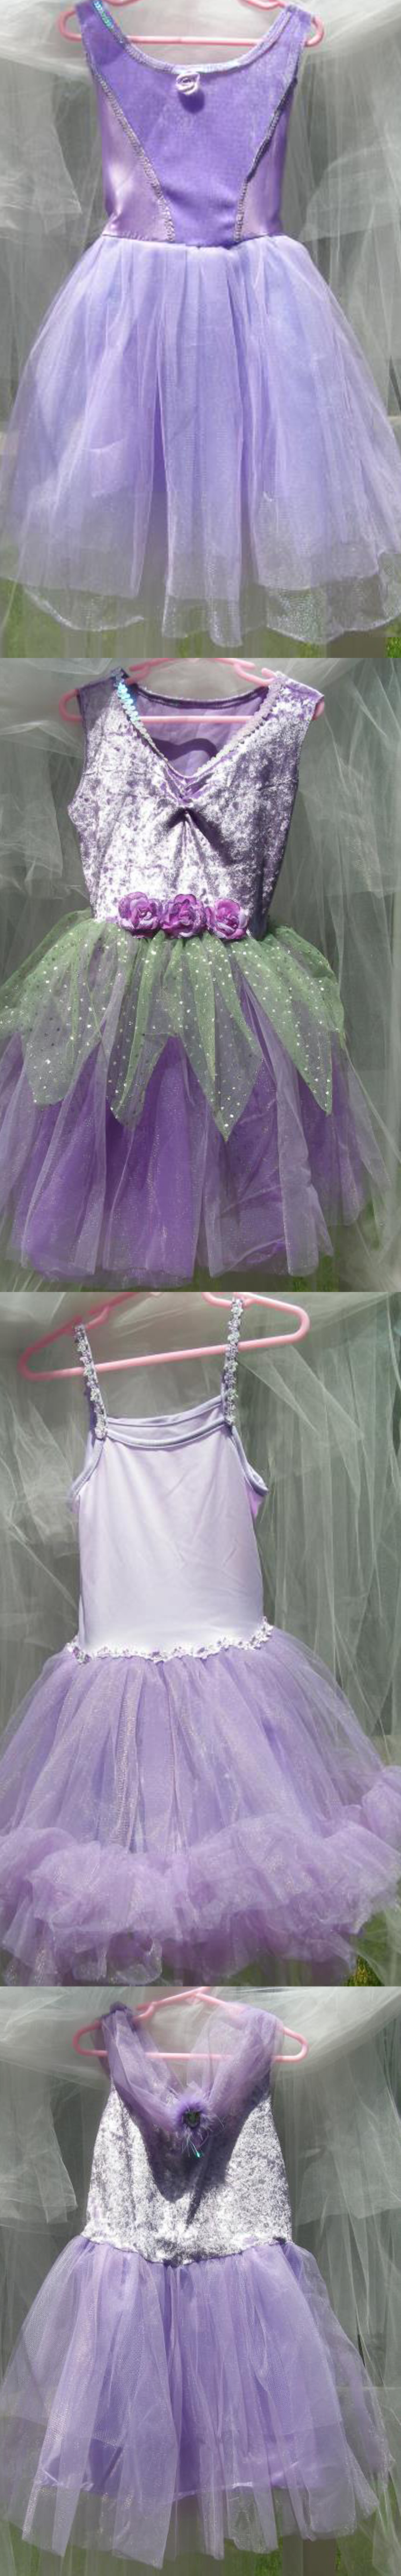 Purple Princess Dresses from My Princess Party to Go. #princessparty #purple #dresses #princess party